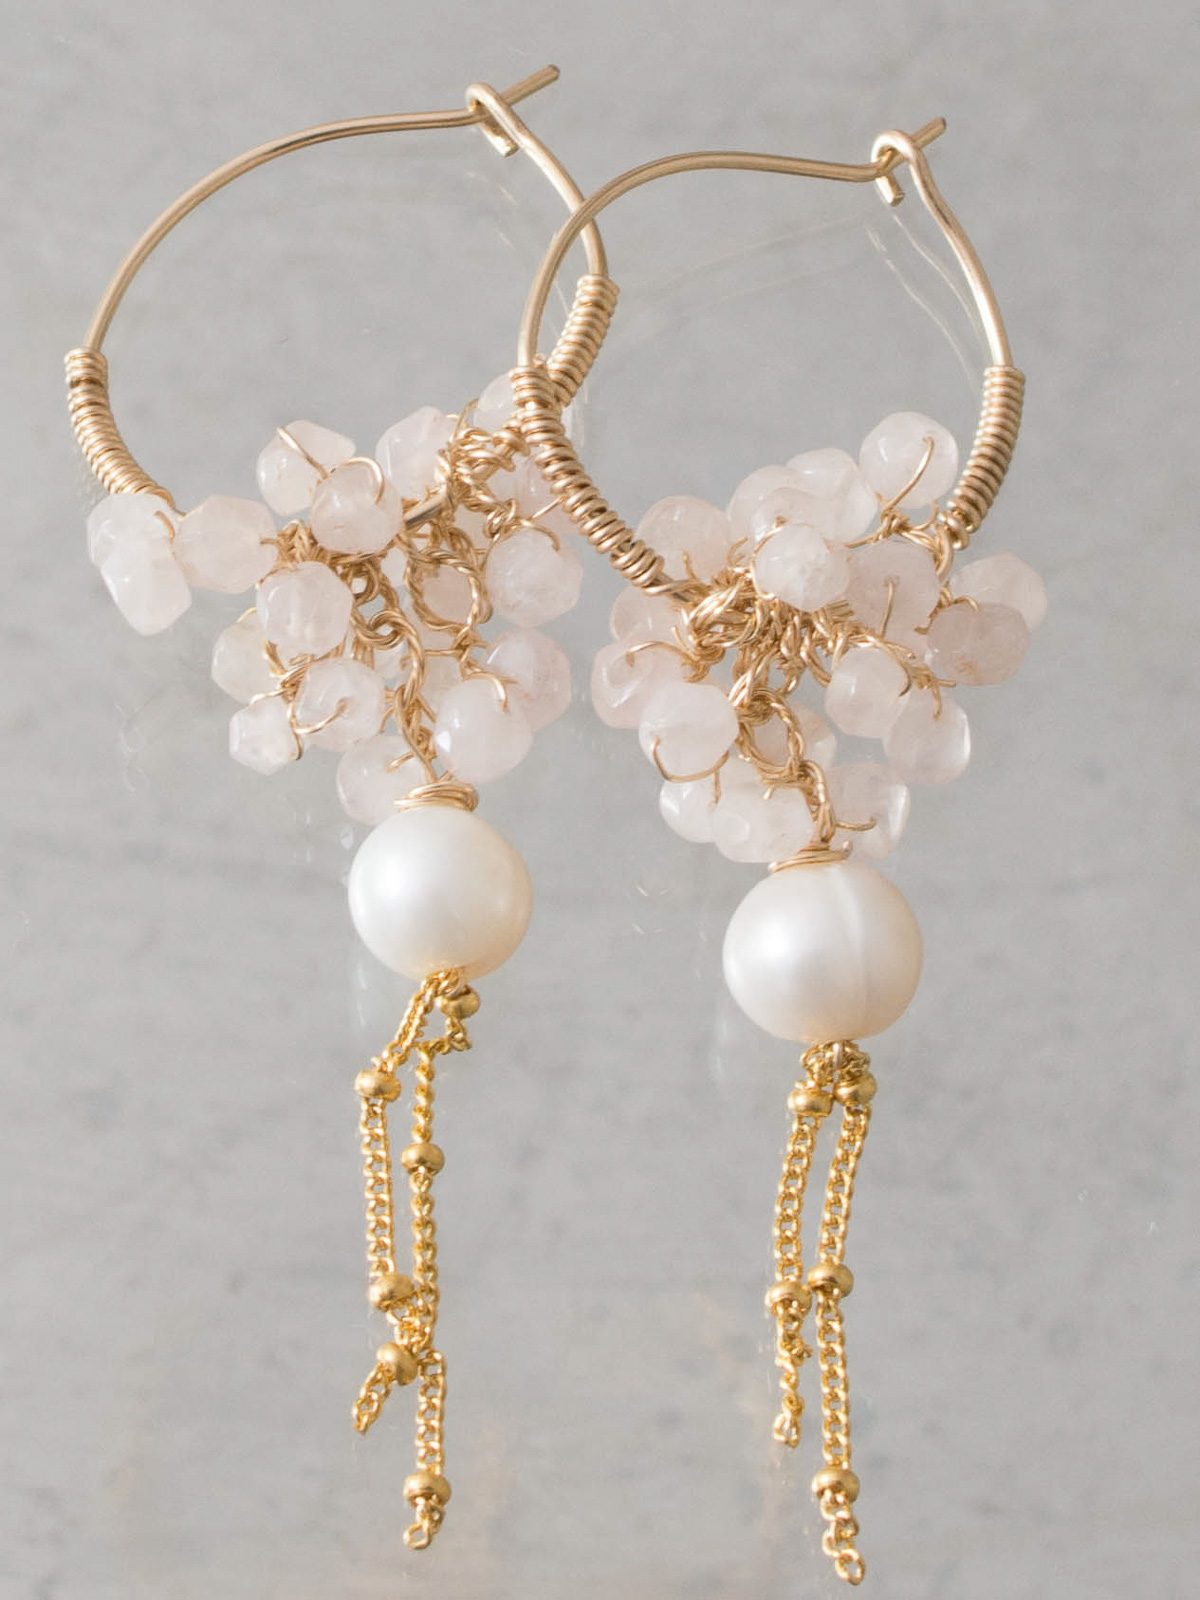 earrings Gipsy rose quartz and pearl